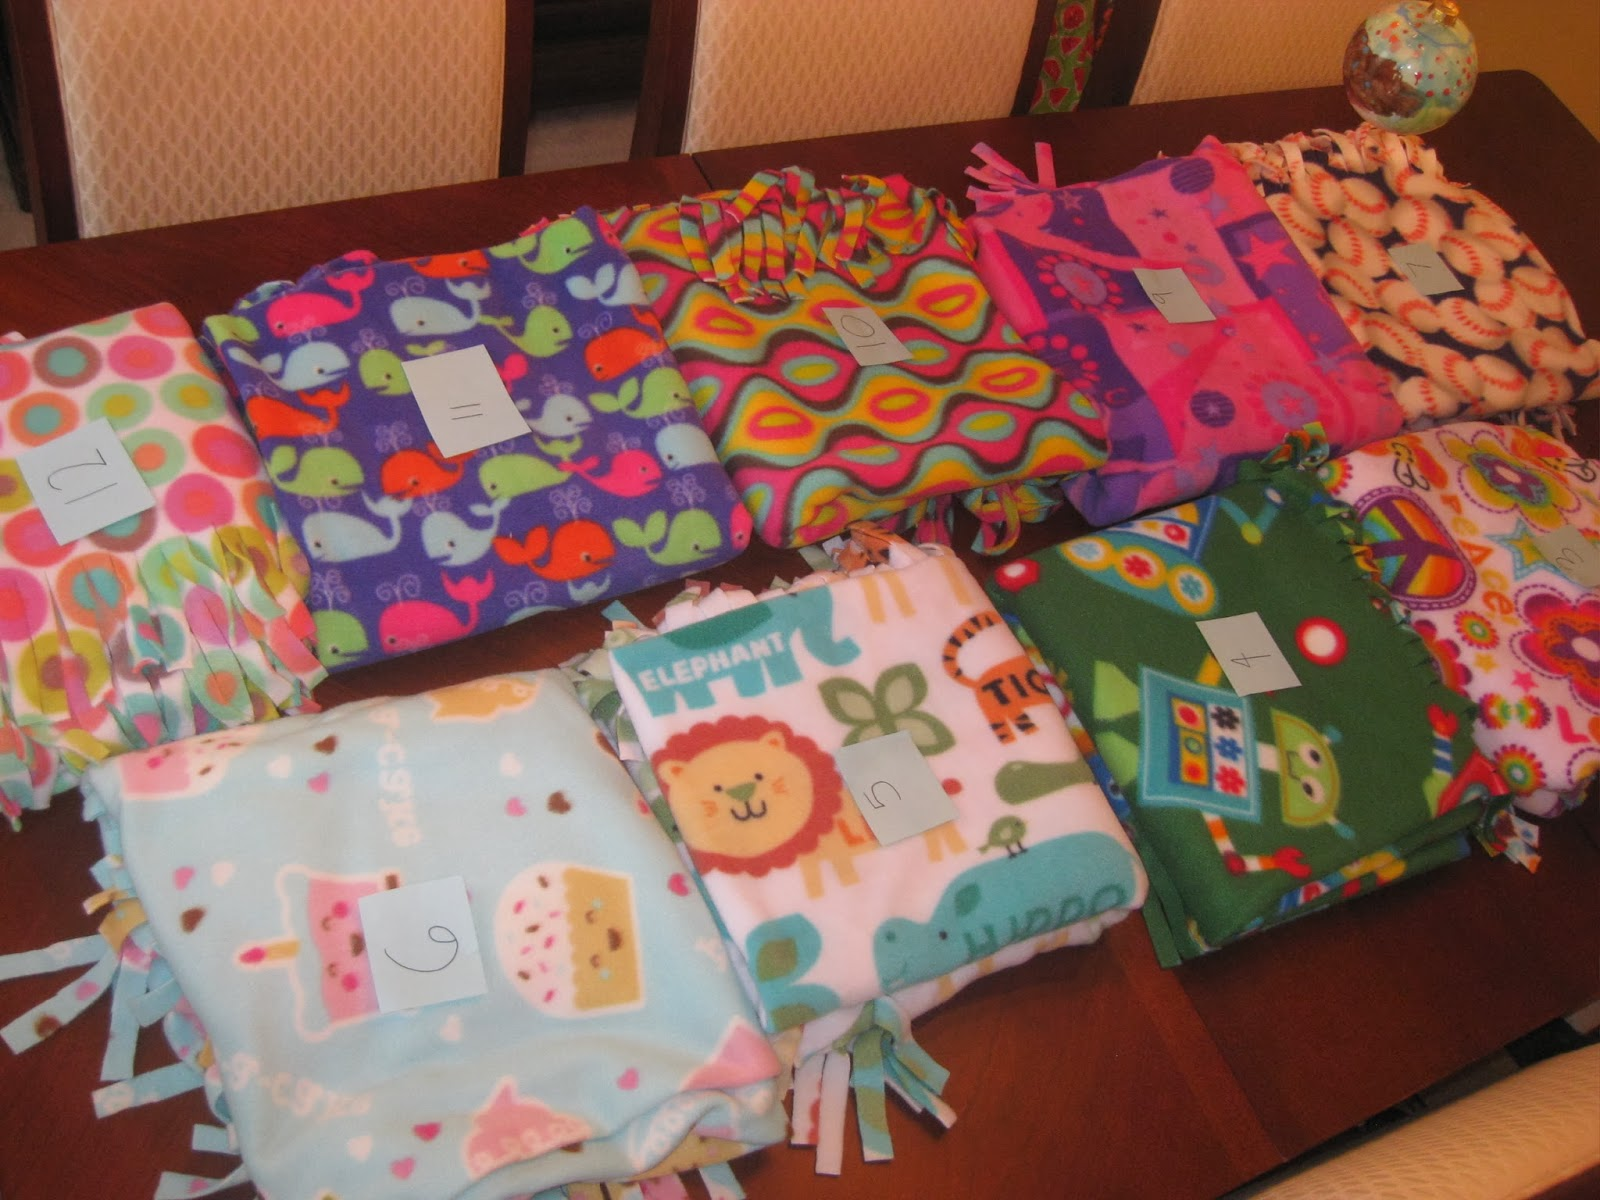 linus blanket project We are a local chapter of project linus, a national nonprofit organization that provides handmade blankets to seriously ill and traumatized children.